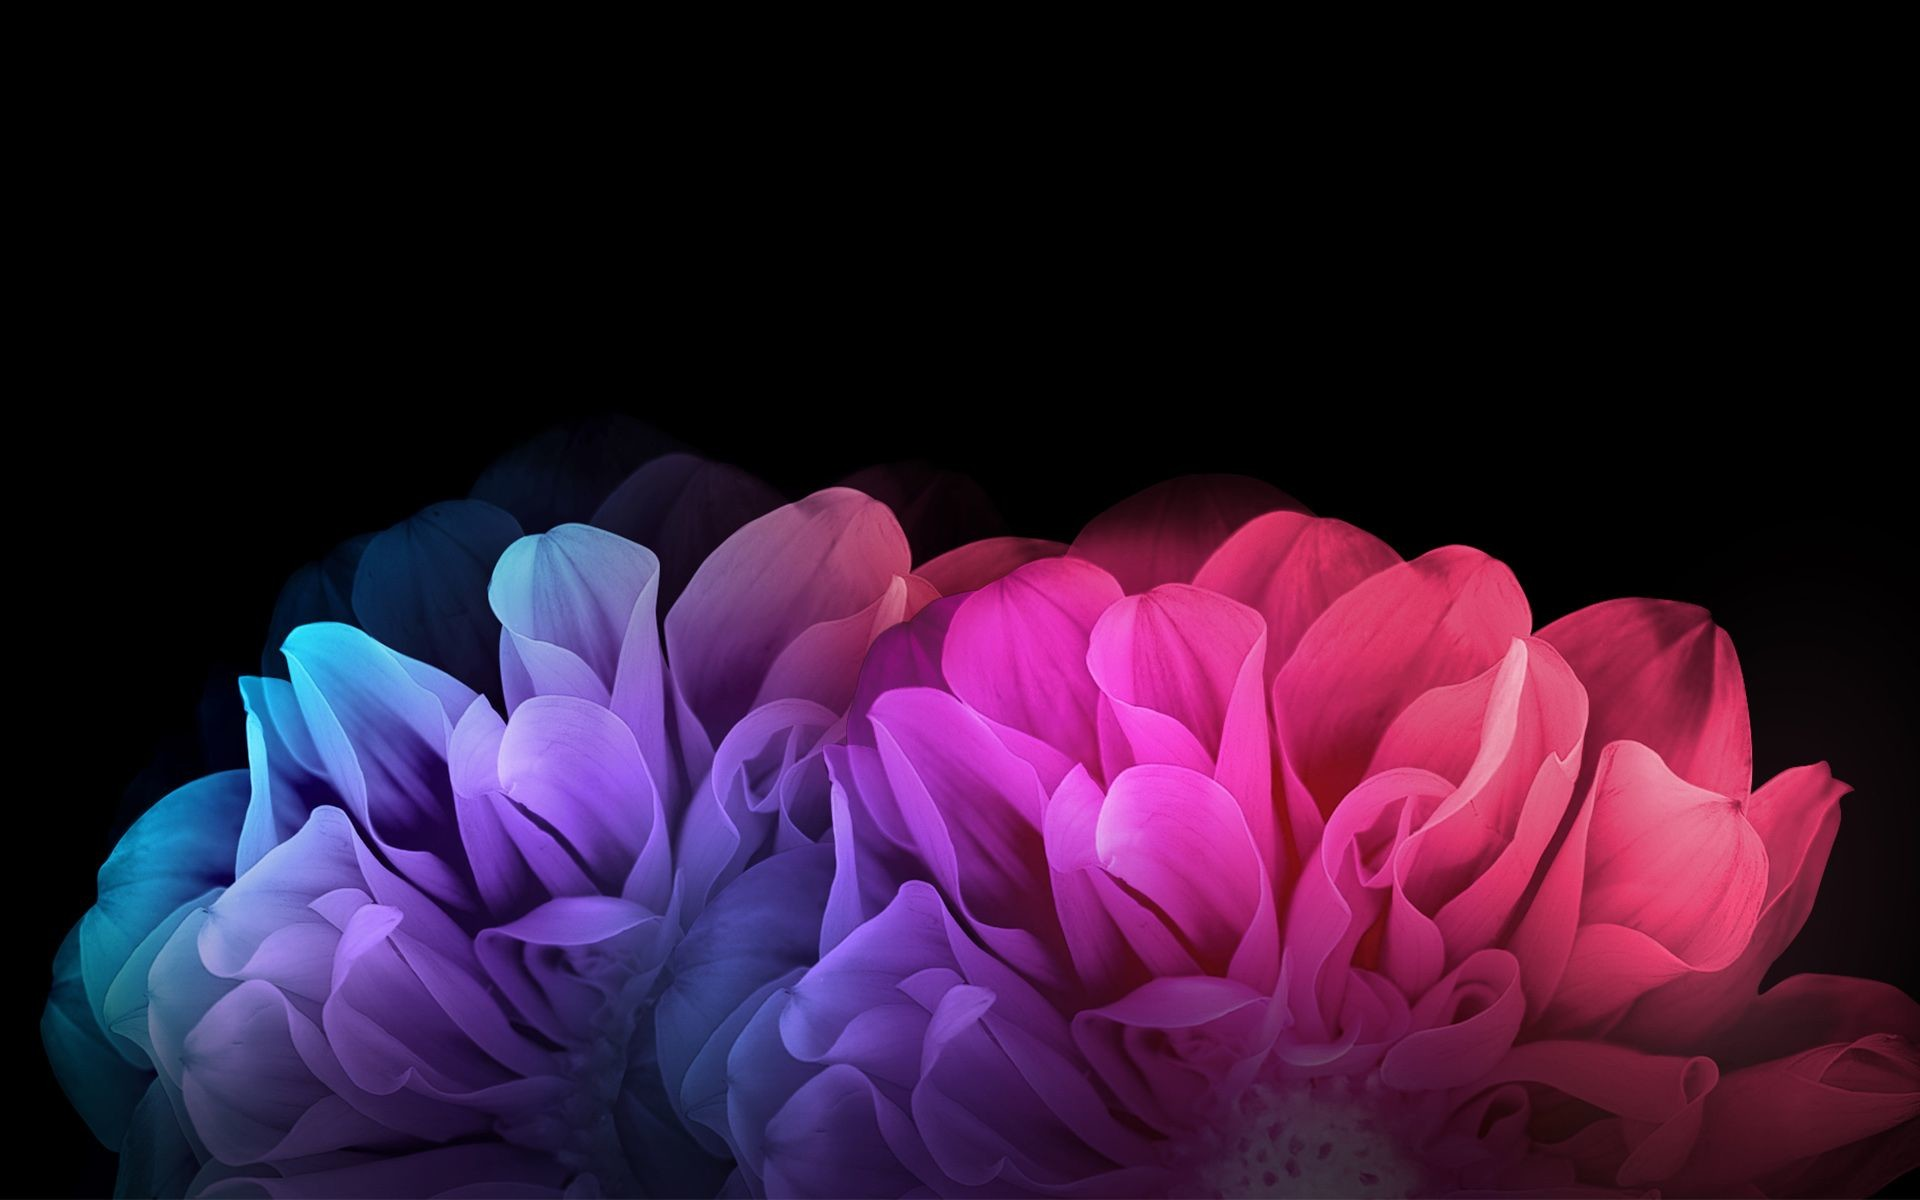 Res: 1920x1200, undefined Dark Colored Wallpapers (35 Wallpapers) | Adorable Wallpapers